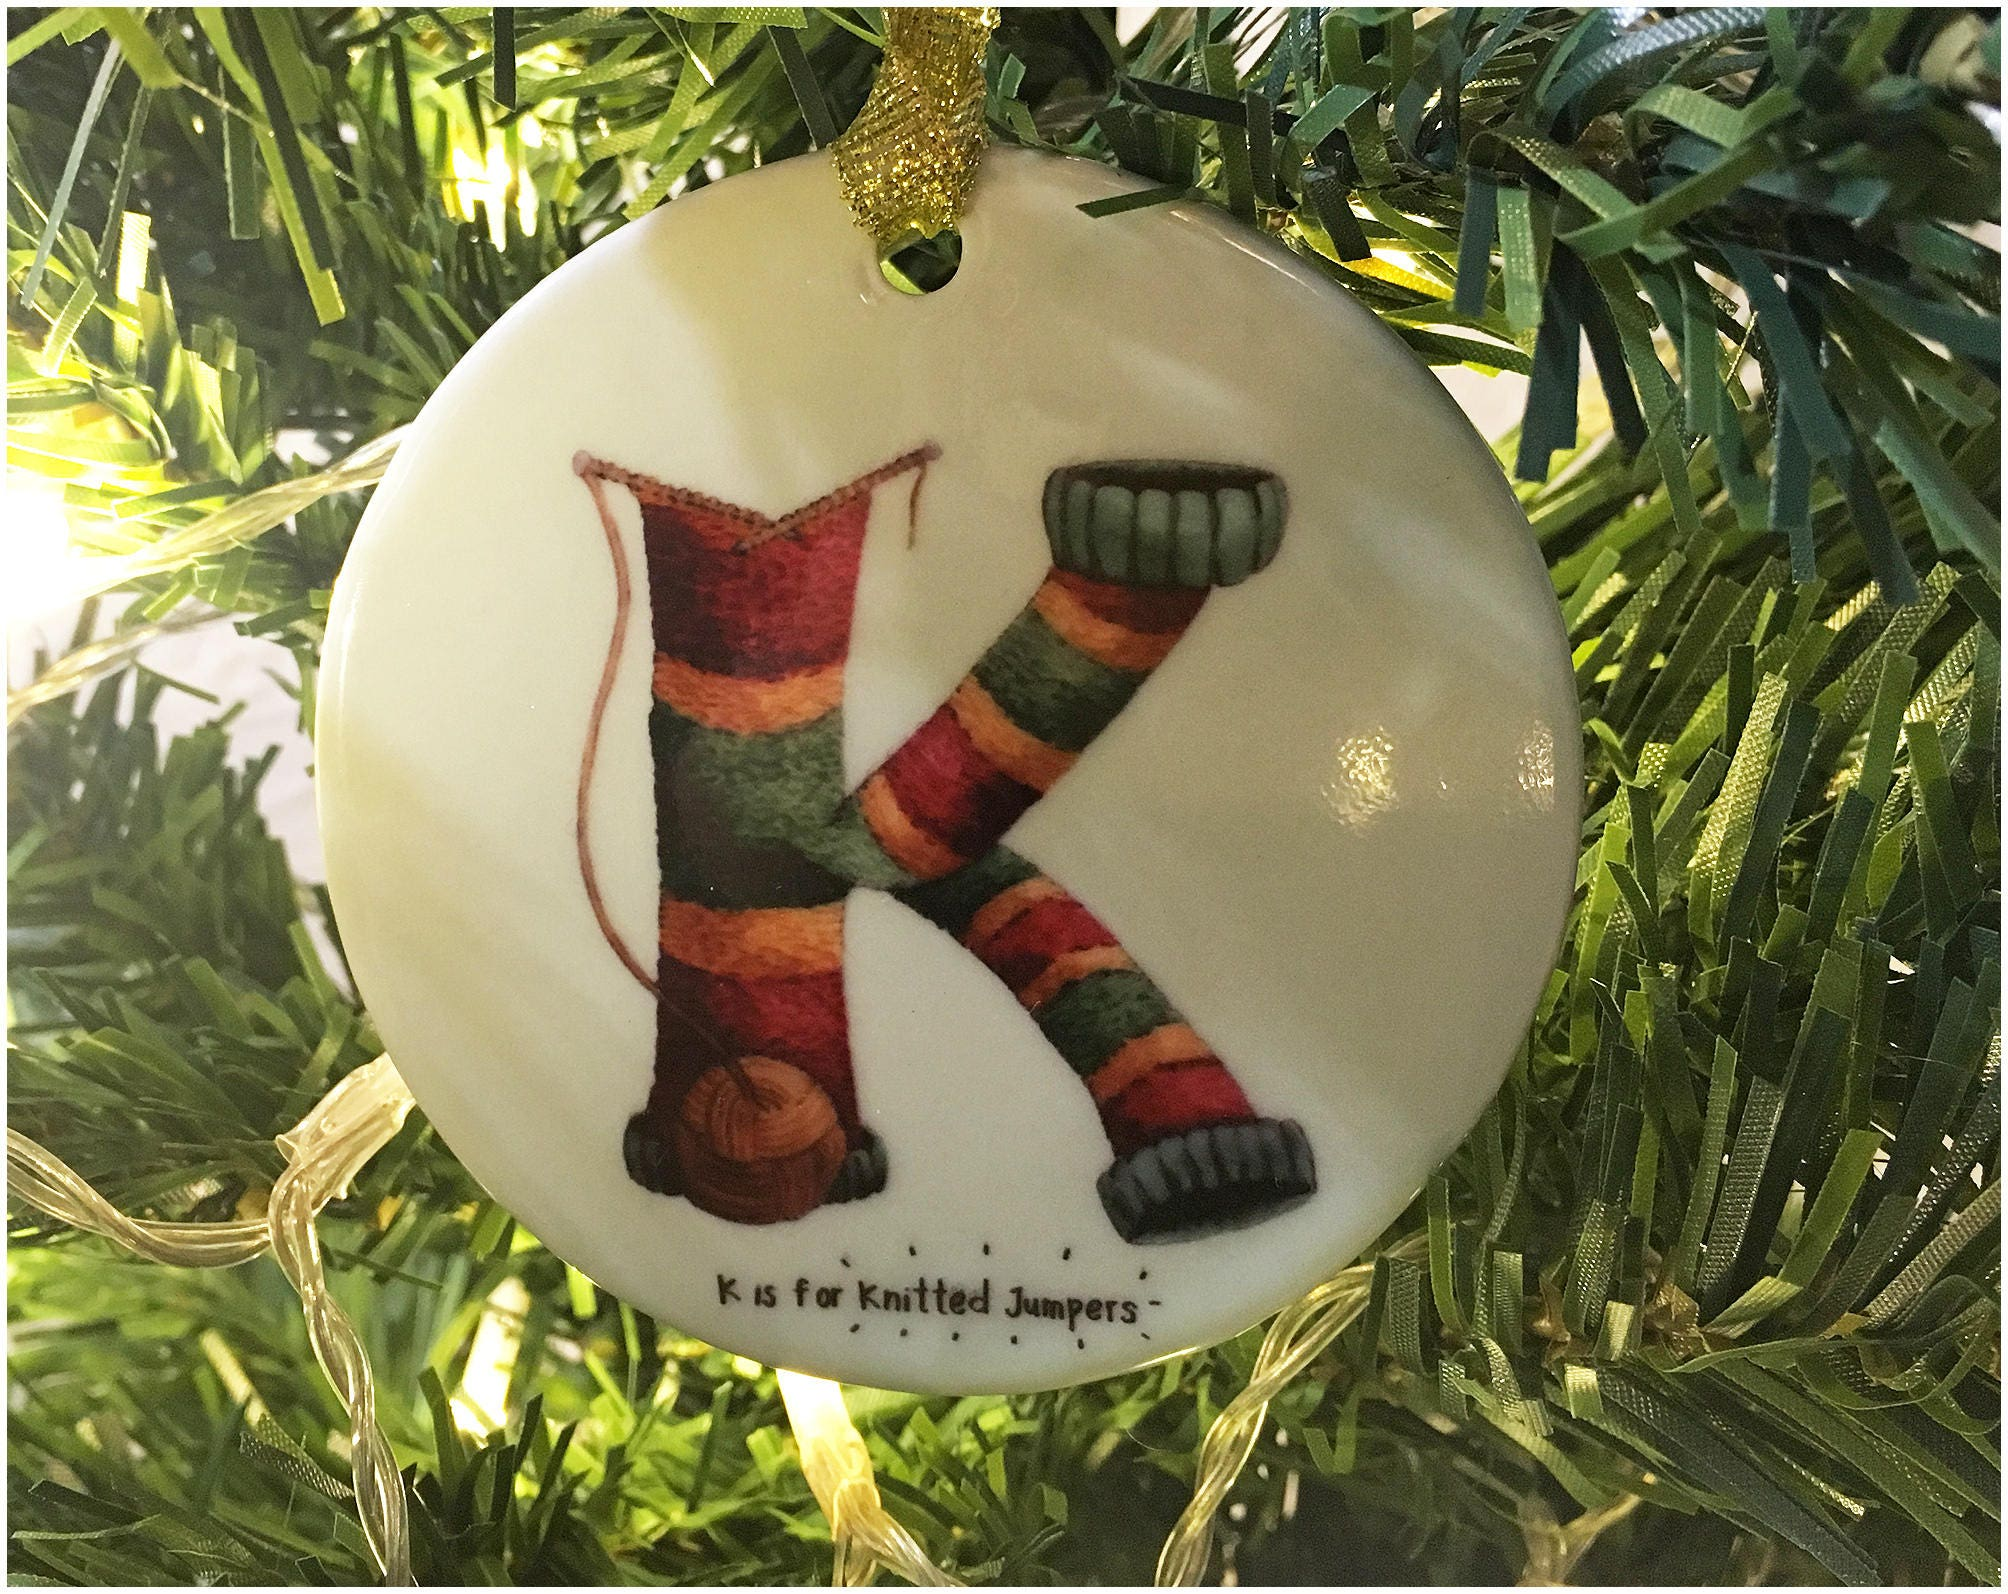 K is for Knitted Jumpers Christmas Tree Ornament